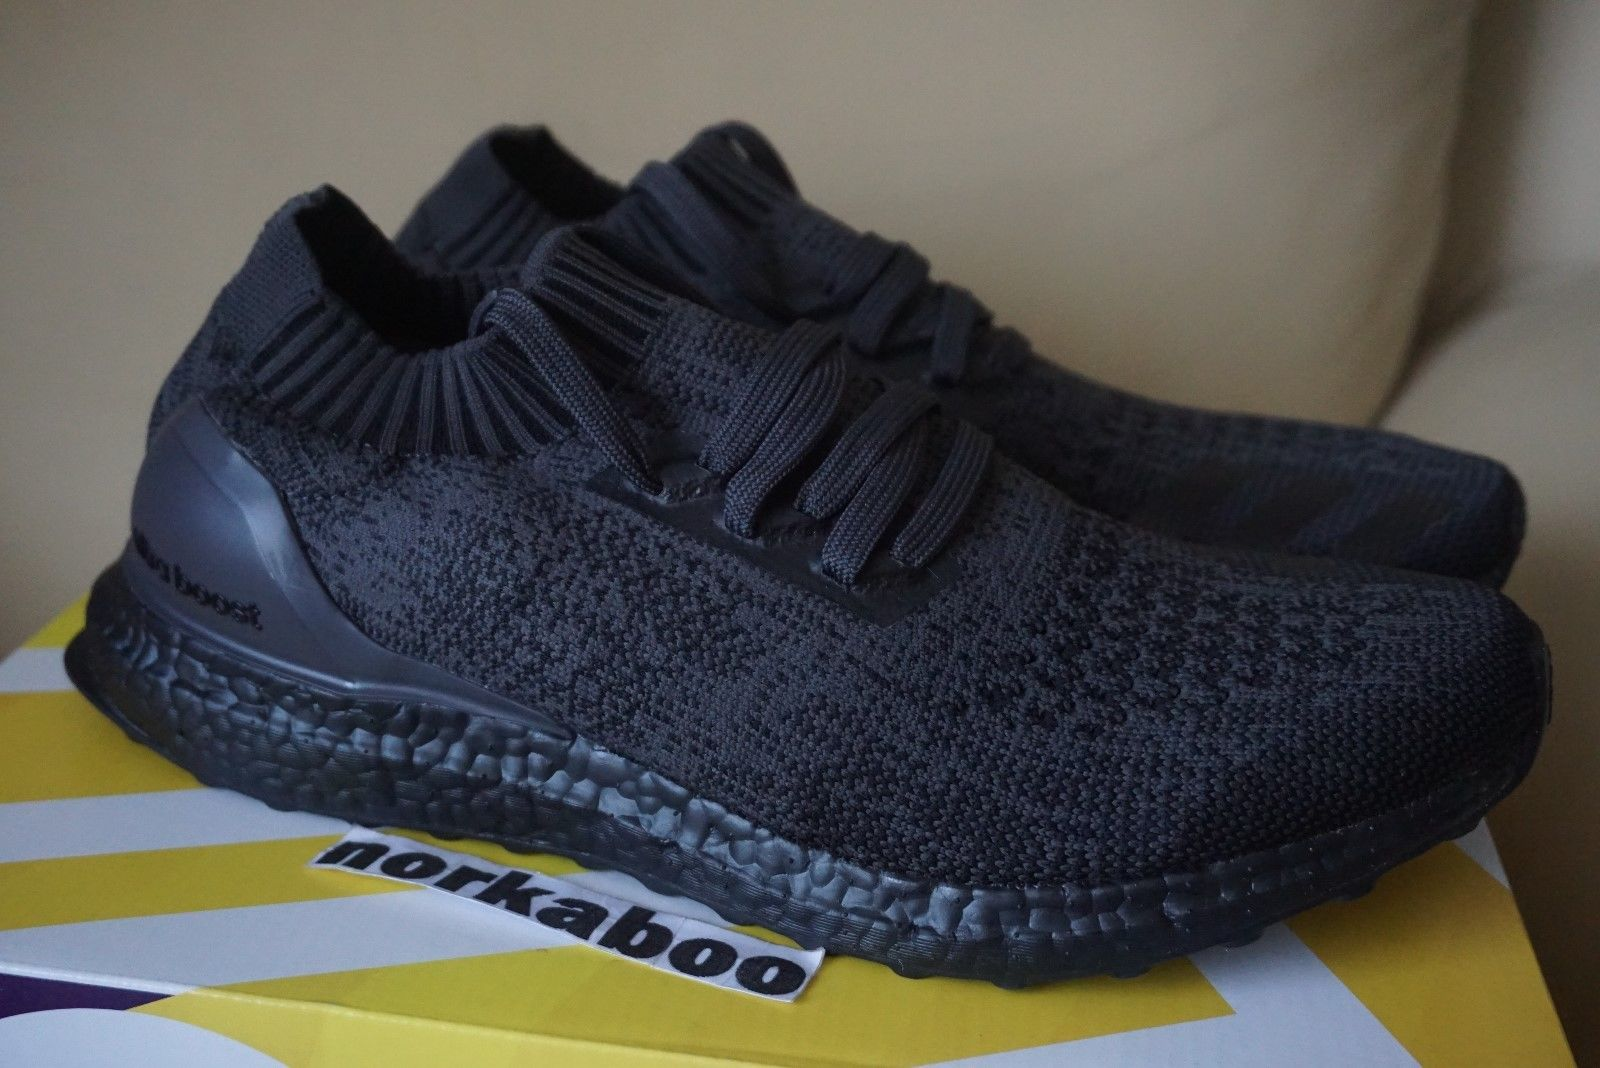 8f9e928f625 Adidas Adidas Ultra Boost Uncaged Triple Black BA7996 Size 10 - Low-Top  Sneakers for Sale - Grailed